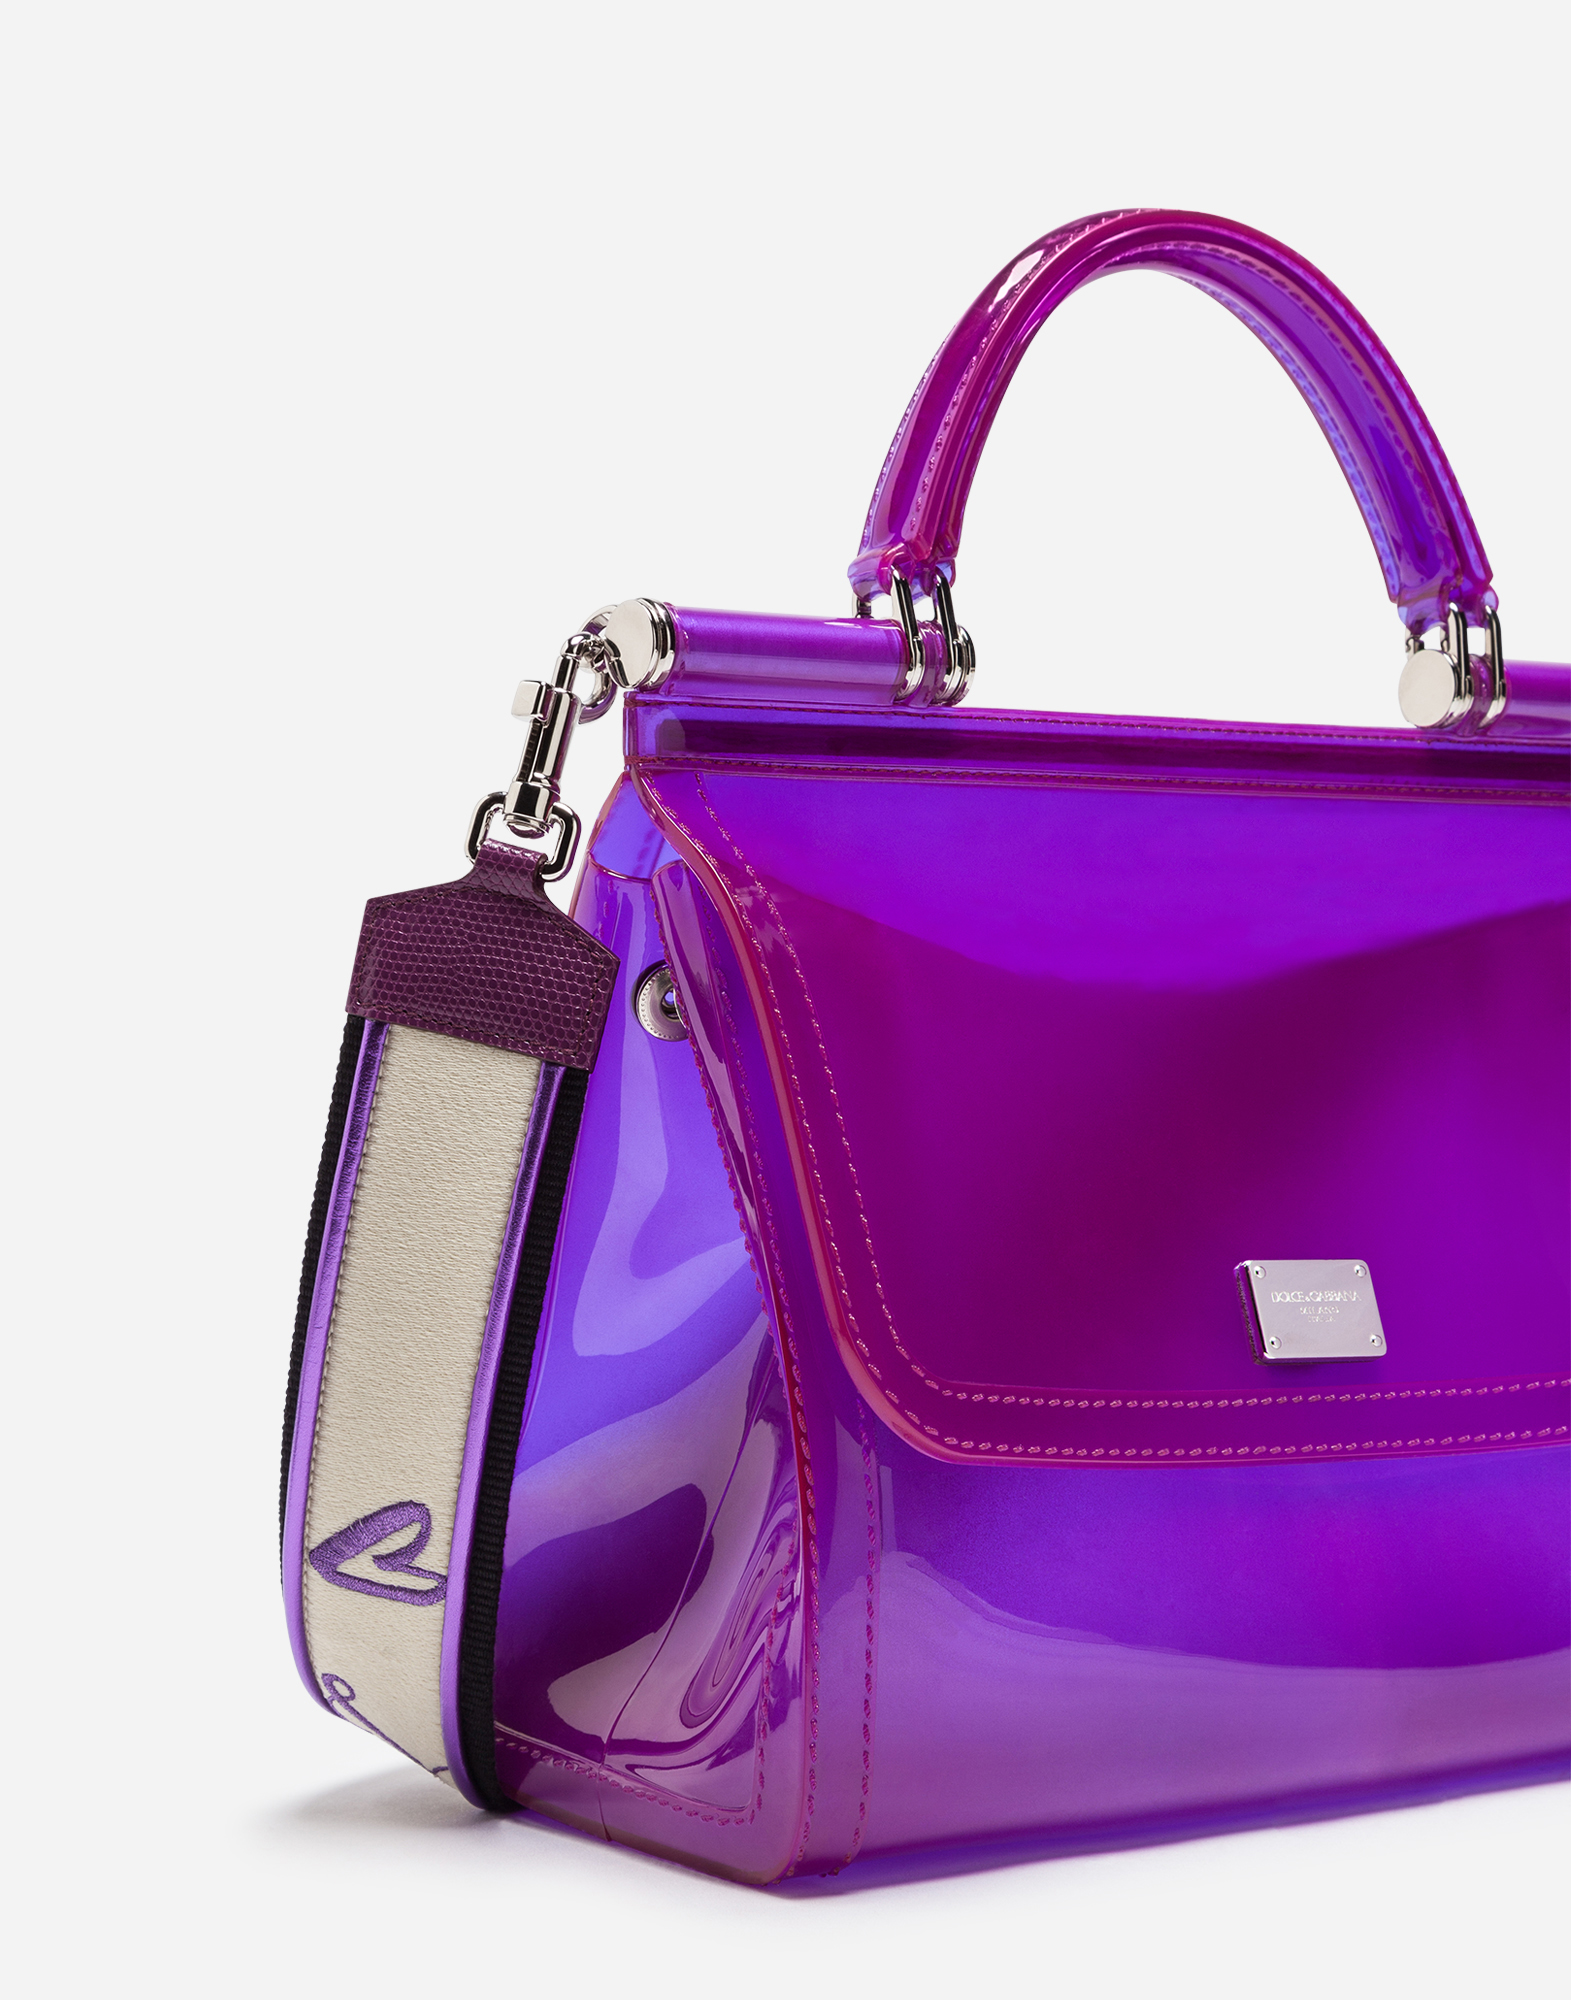 SEMI-TRANSPARENT RUBBER SICILY HANDBAG